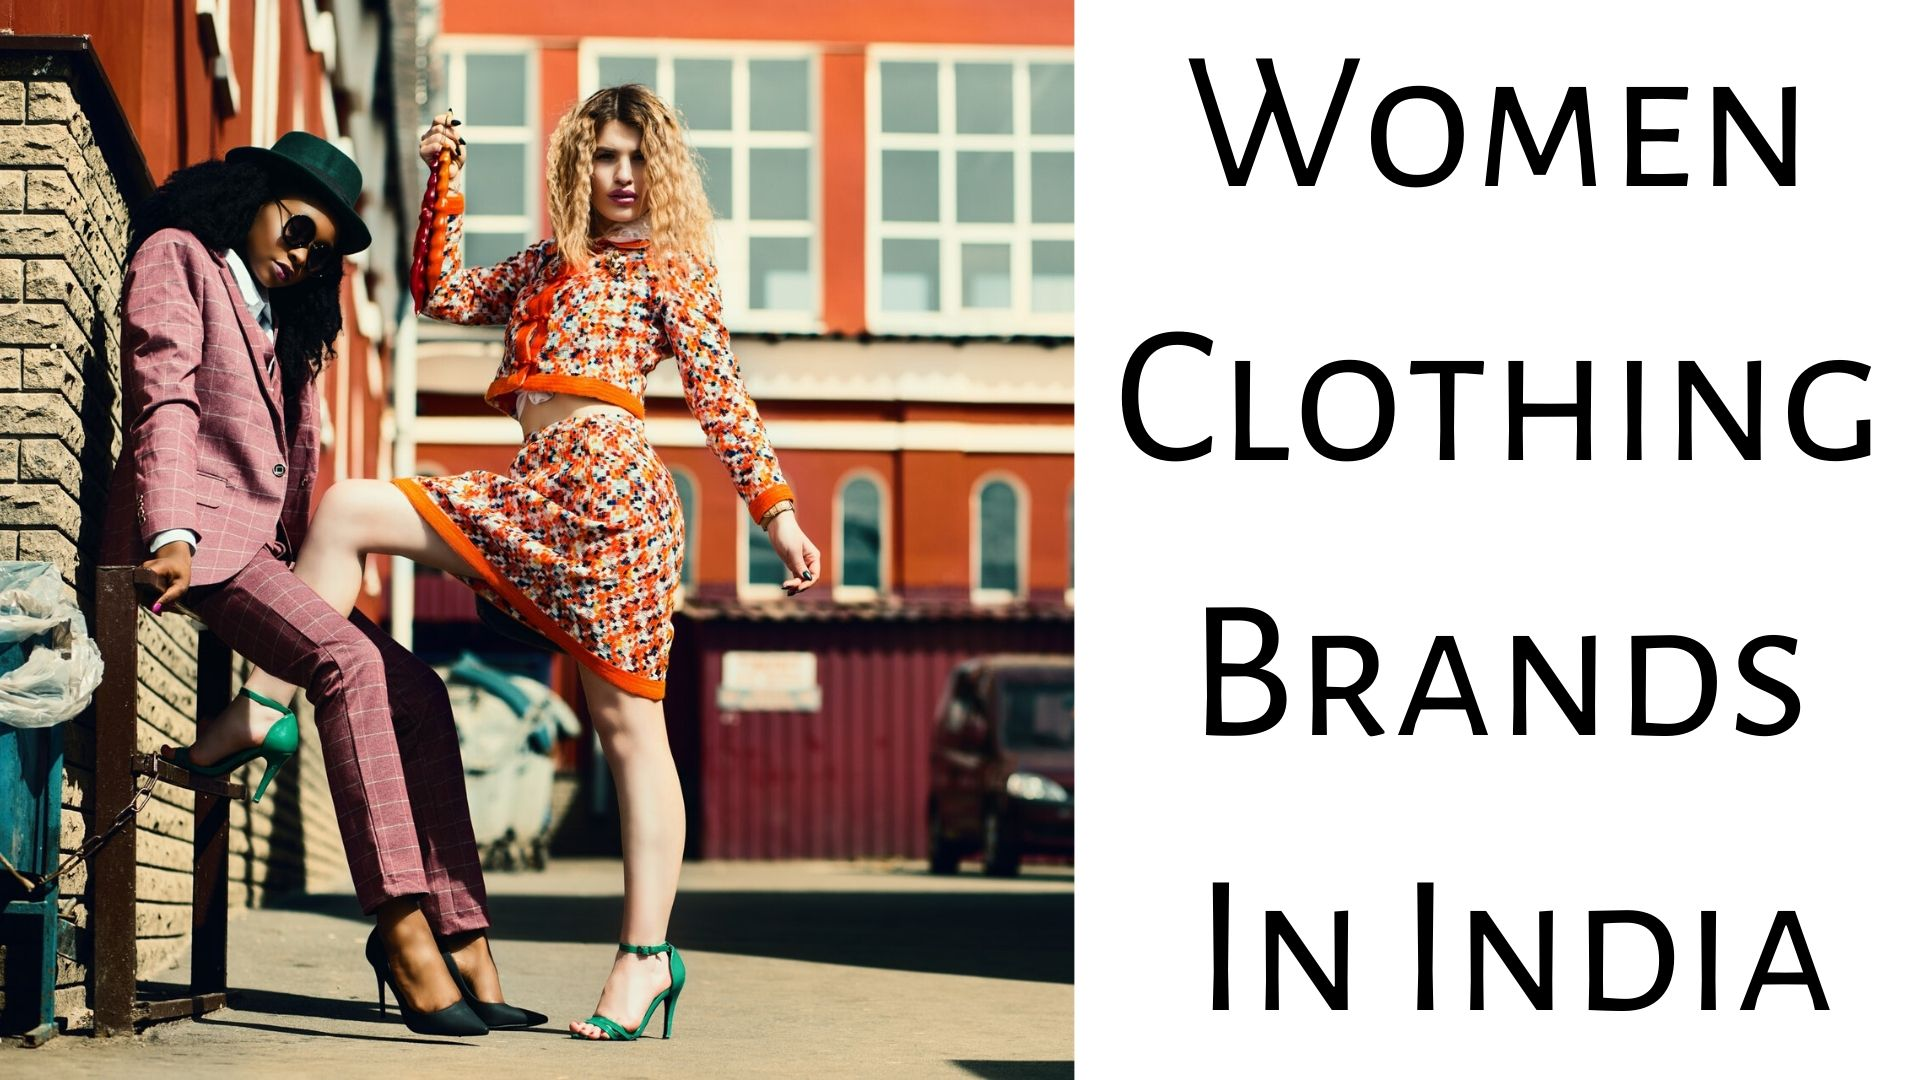 Women Clothing Brands In India